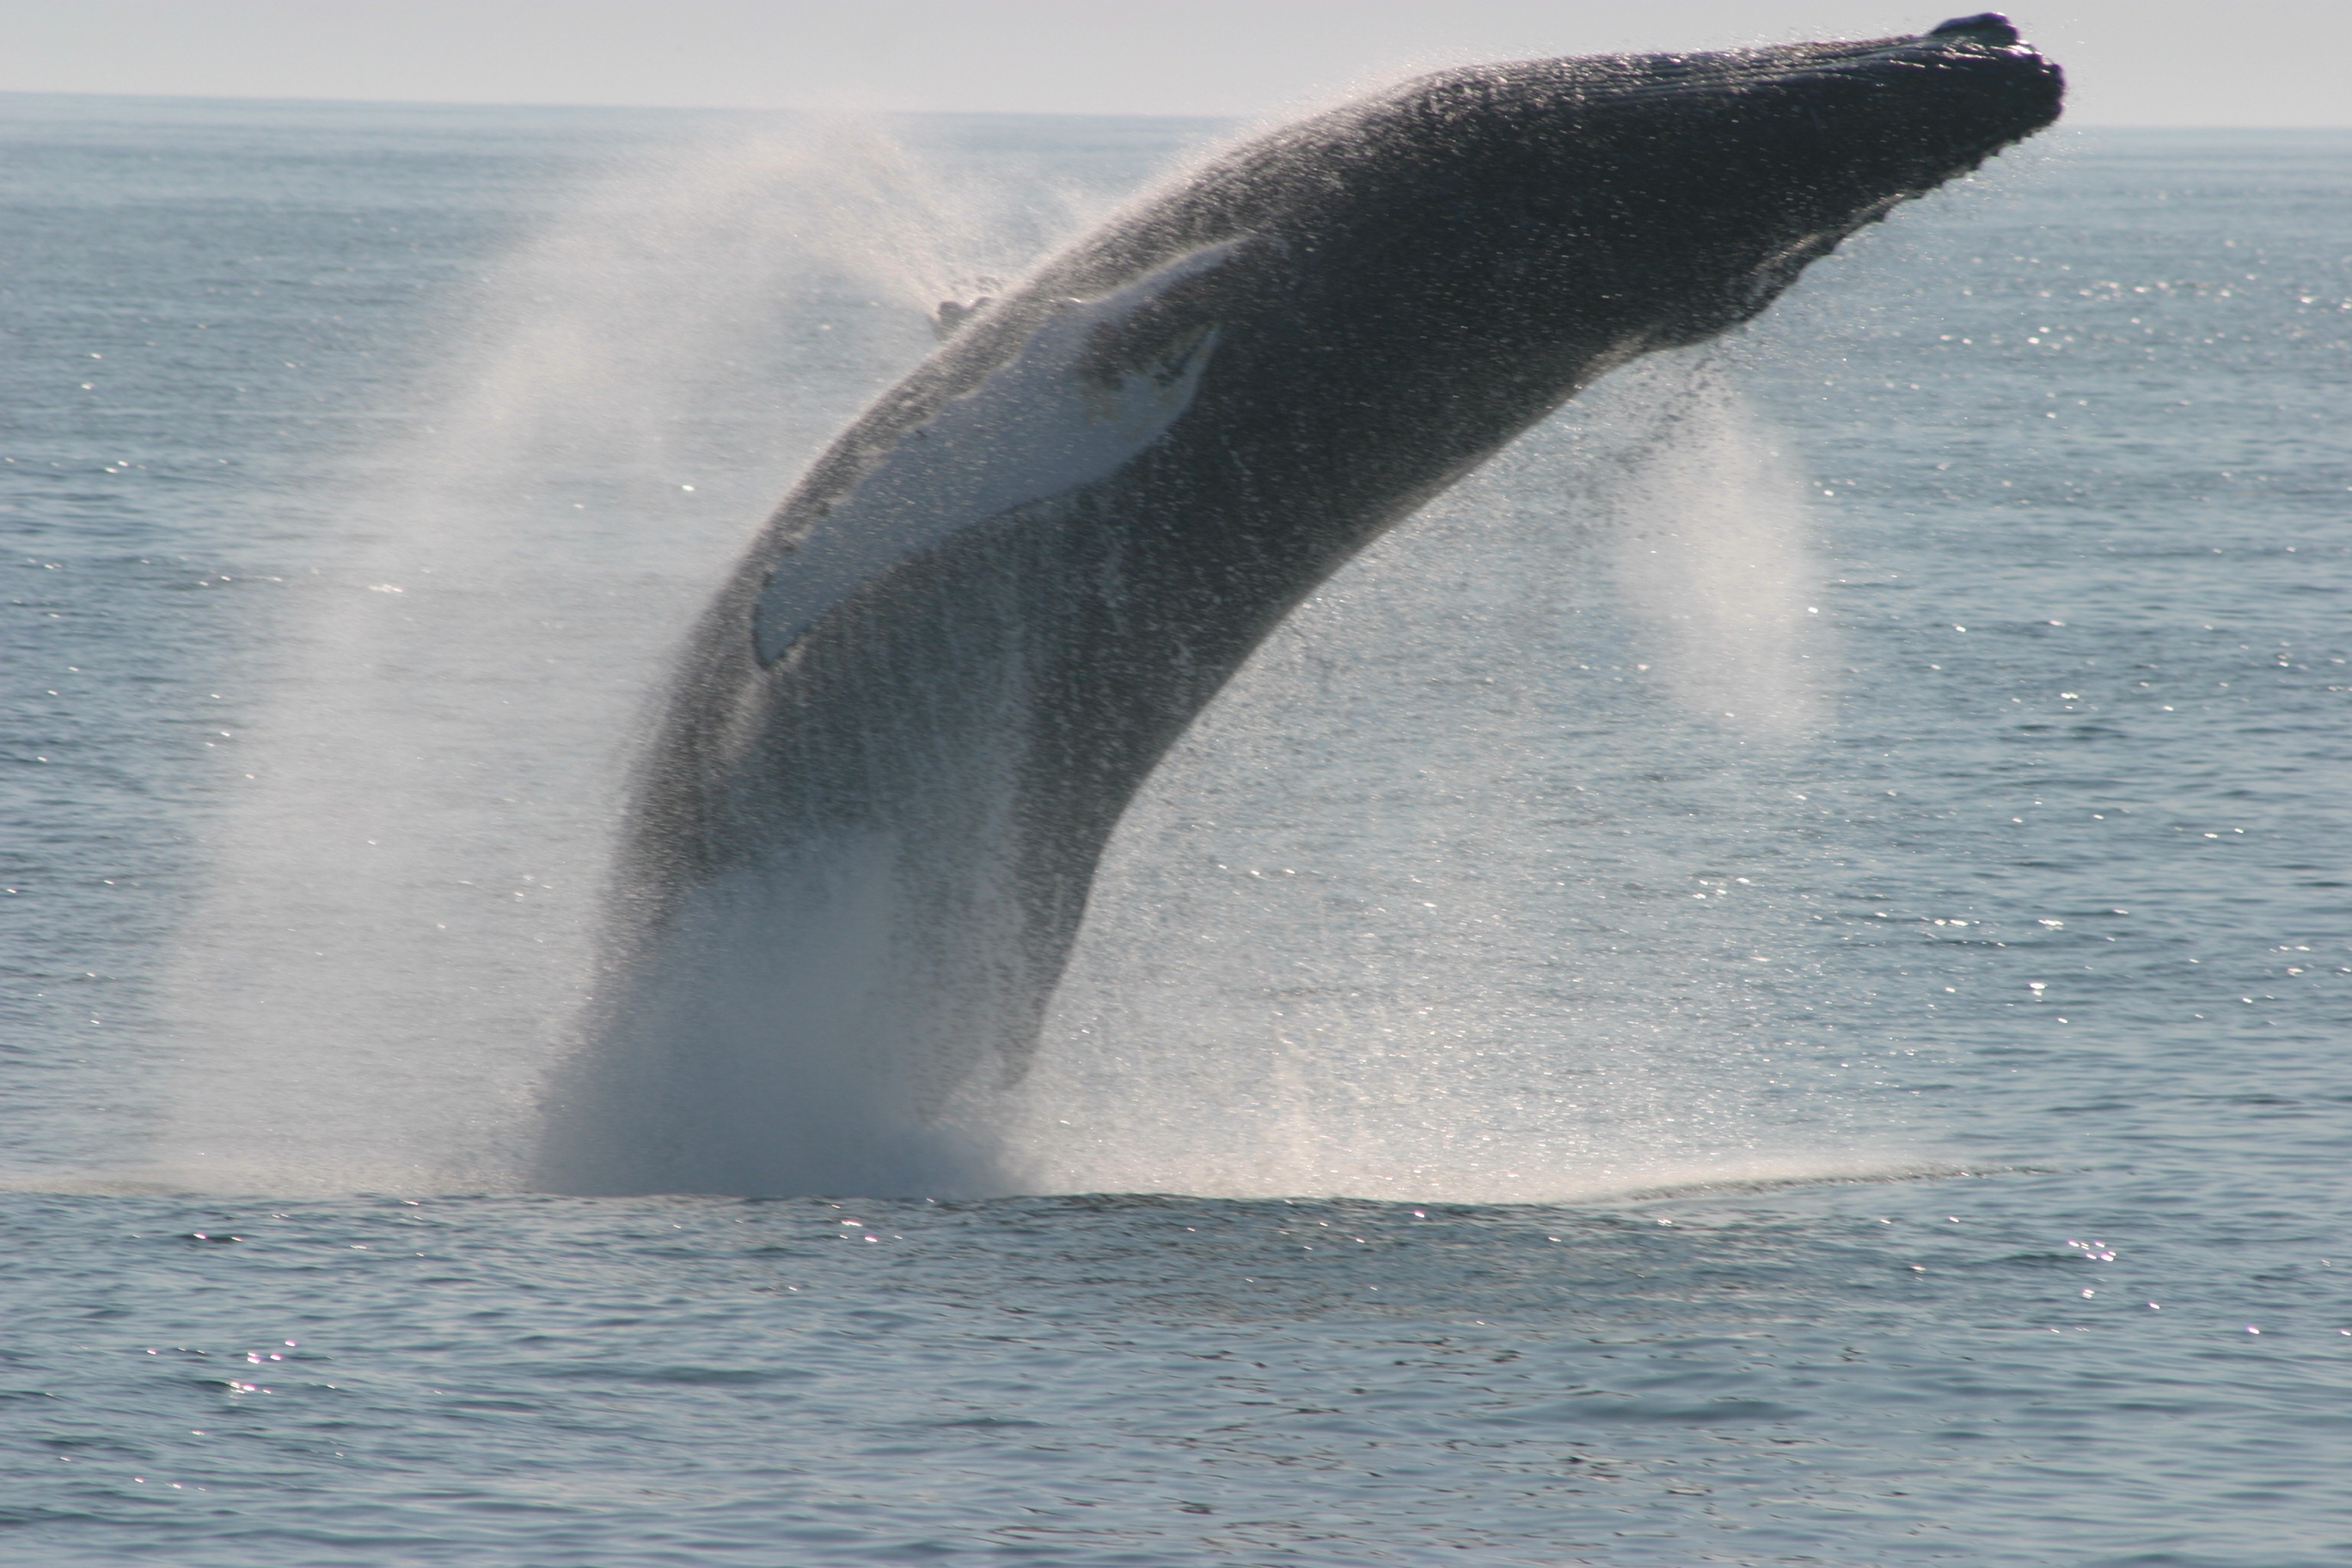 Breaching Humpback Whale named Veteran